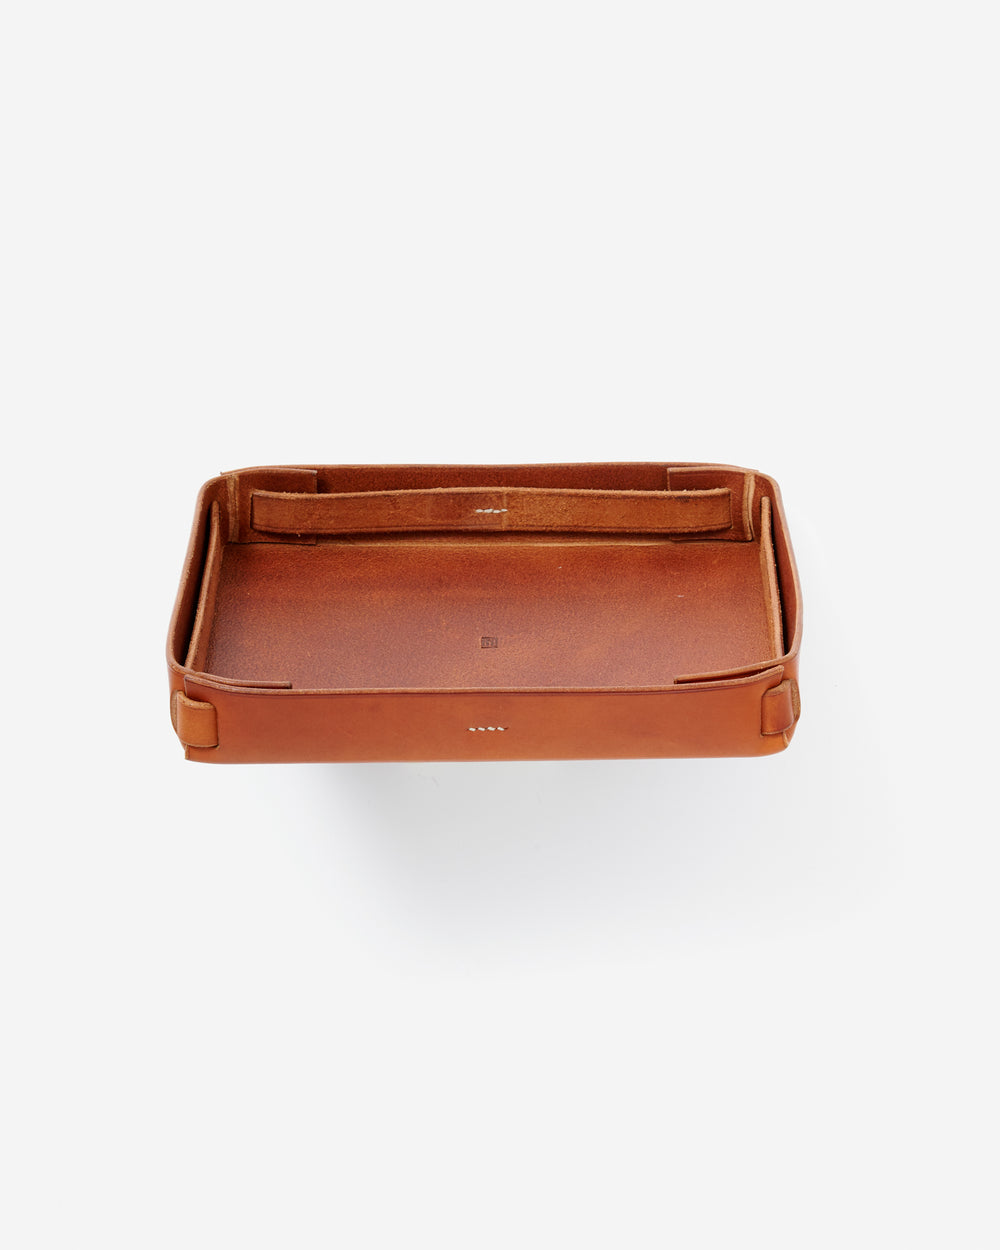 Hand-crafted Leather Storage Tray